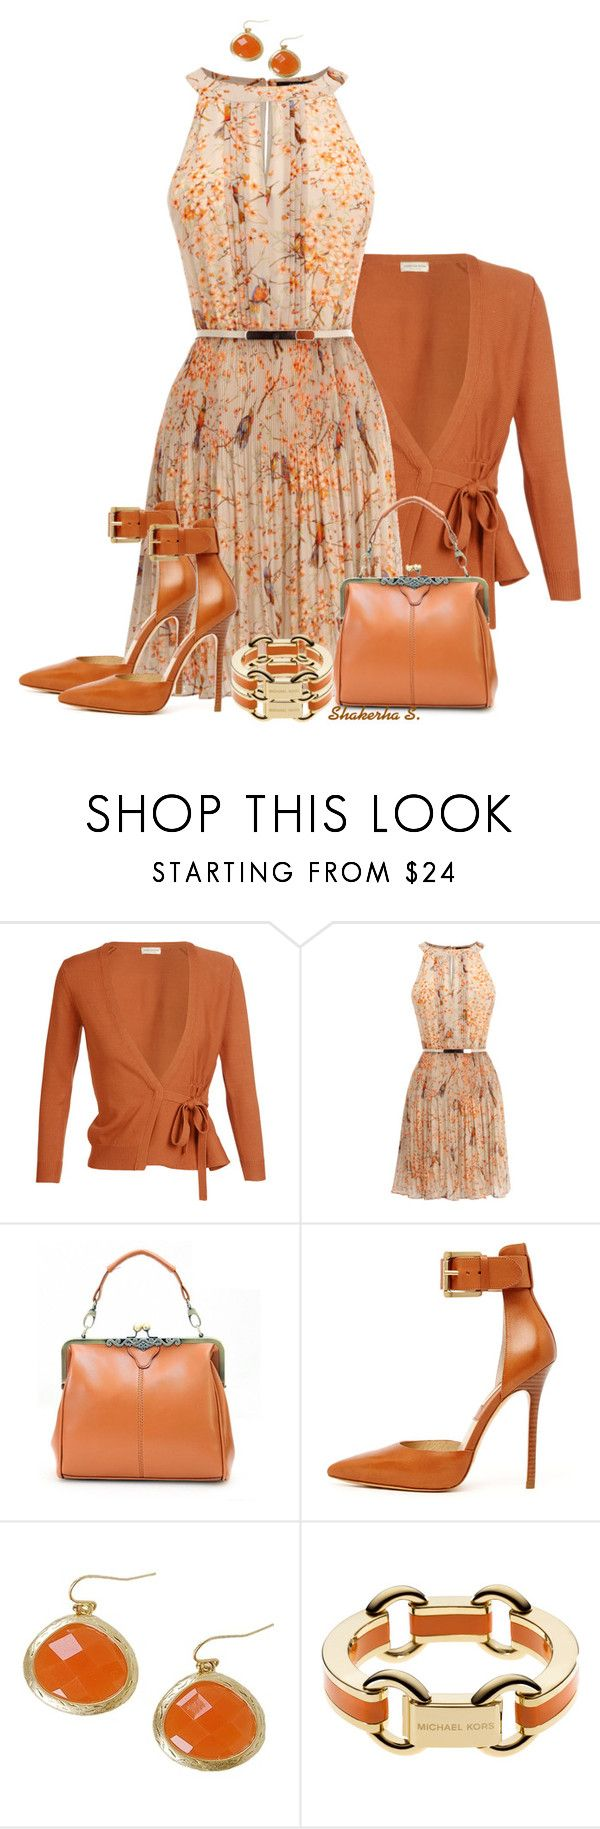 """Pleated Dress"" by shakerhaallen ❤ liked on Polyvore featuring Dries Van Noten, Oasis, Retrò, Michael Kors and Humble Chic"